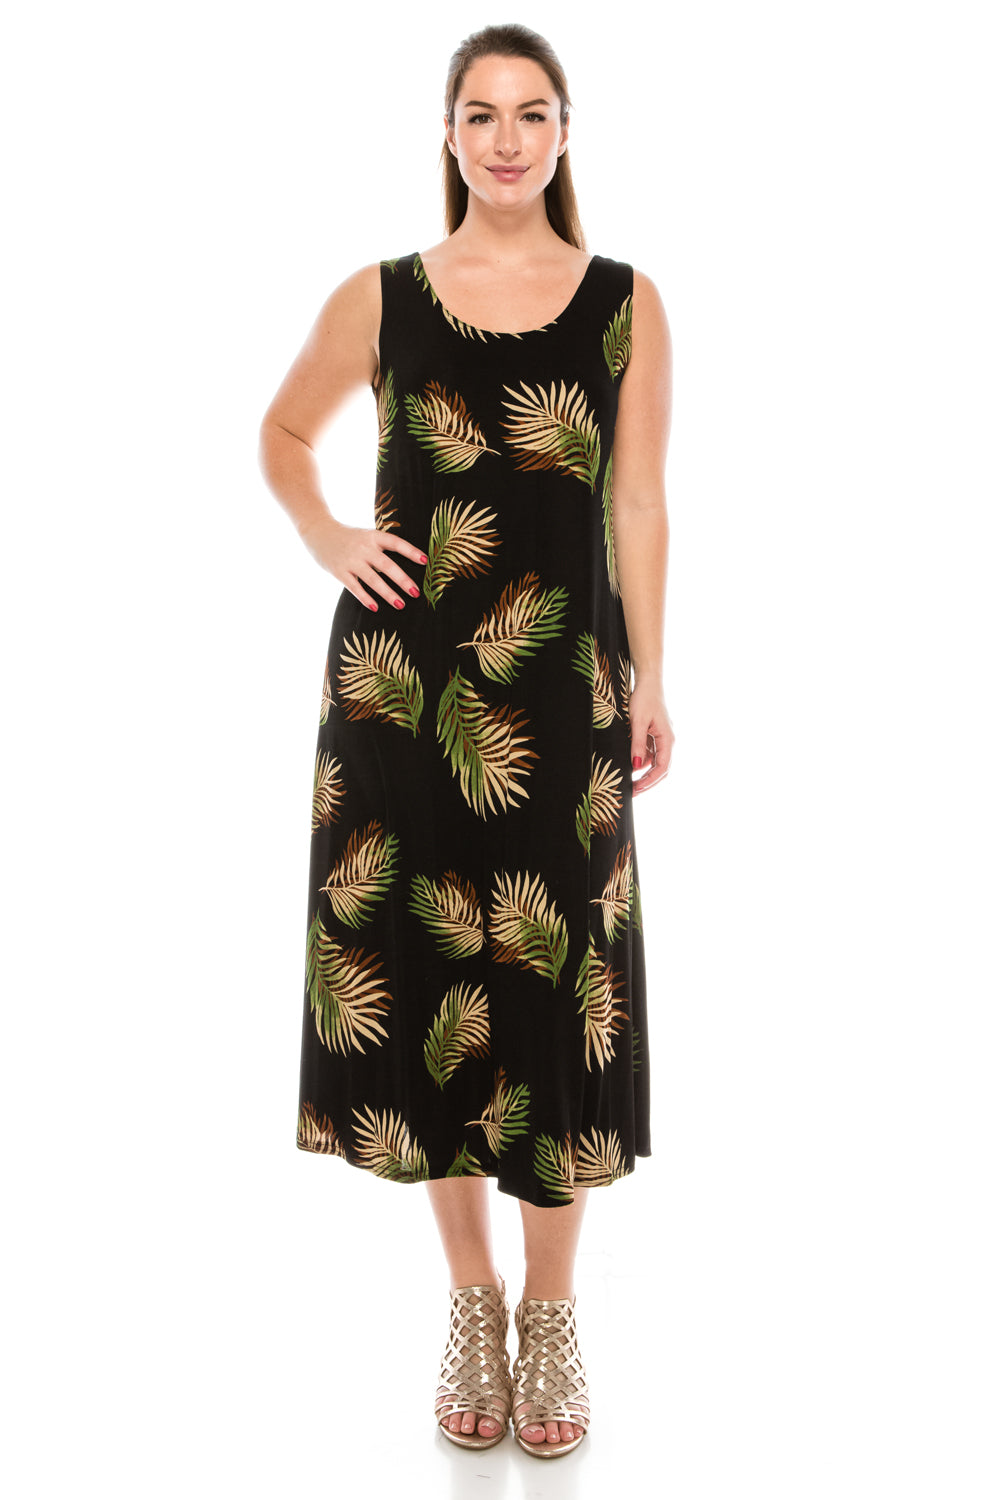 Jostar Women's Stretchy Long Tank Dress Print, 700BN-TP-W002 - Jostar Online